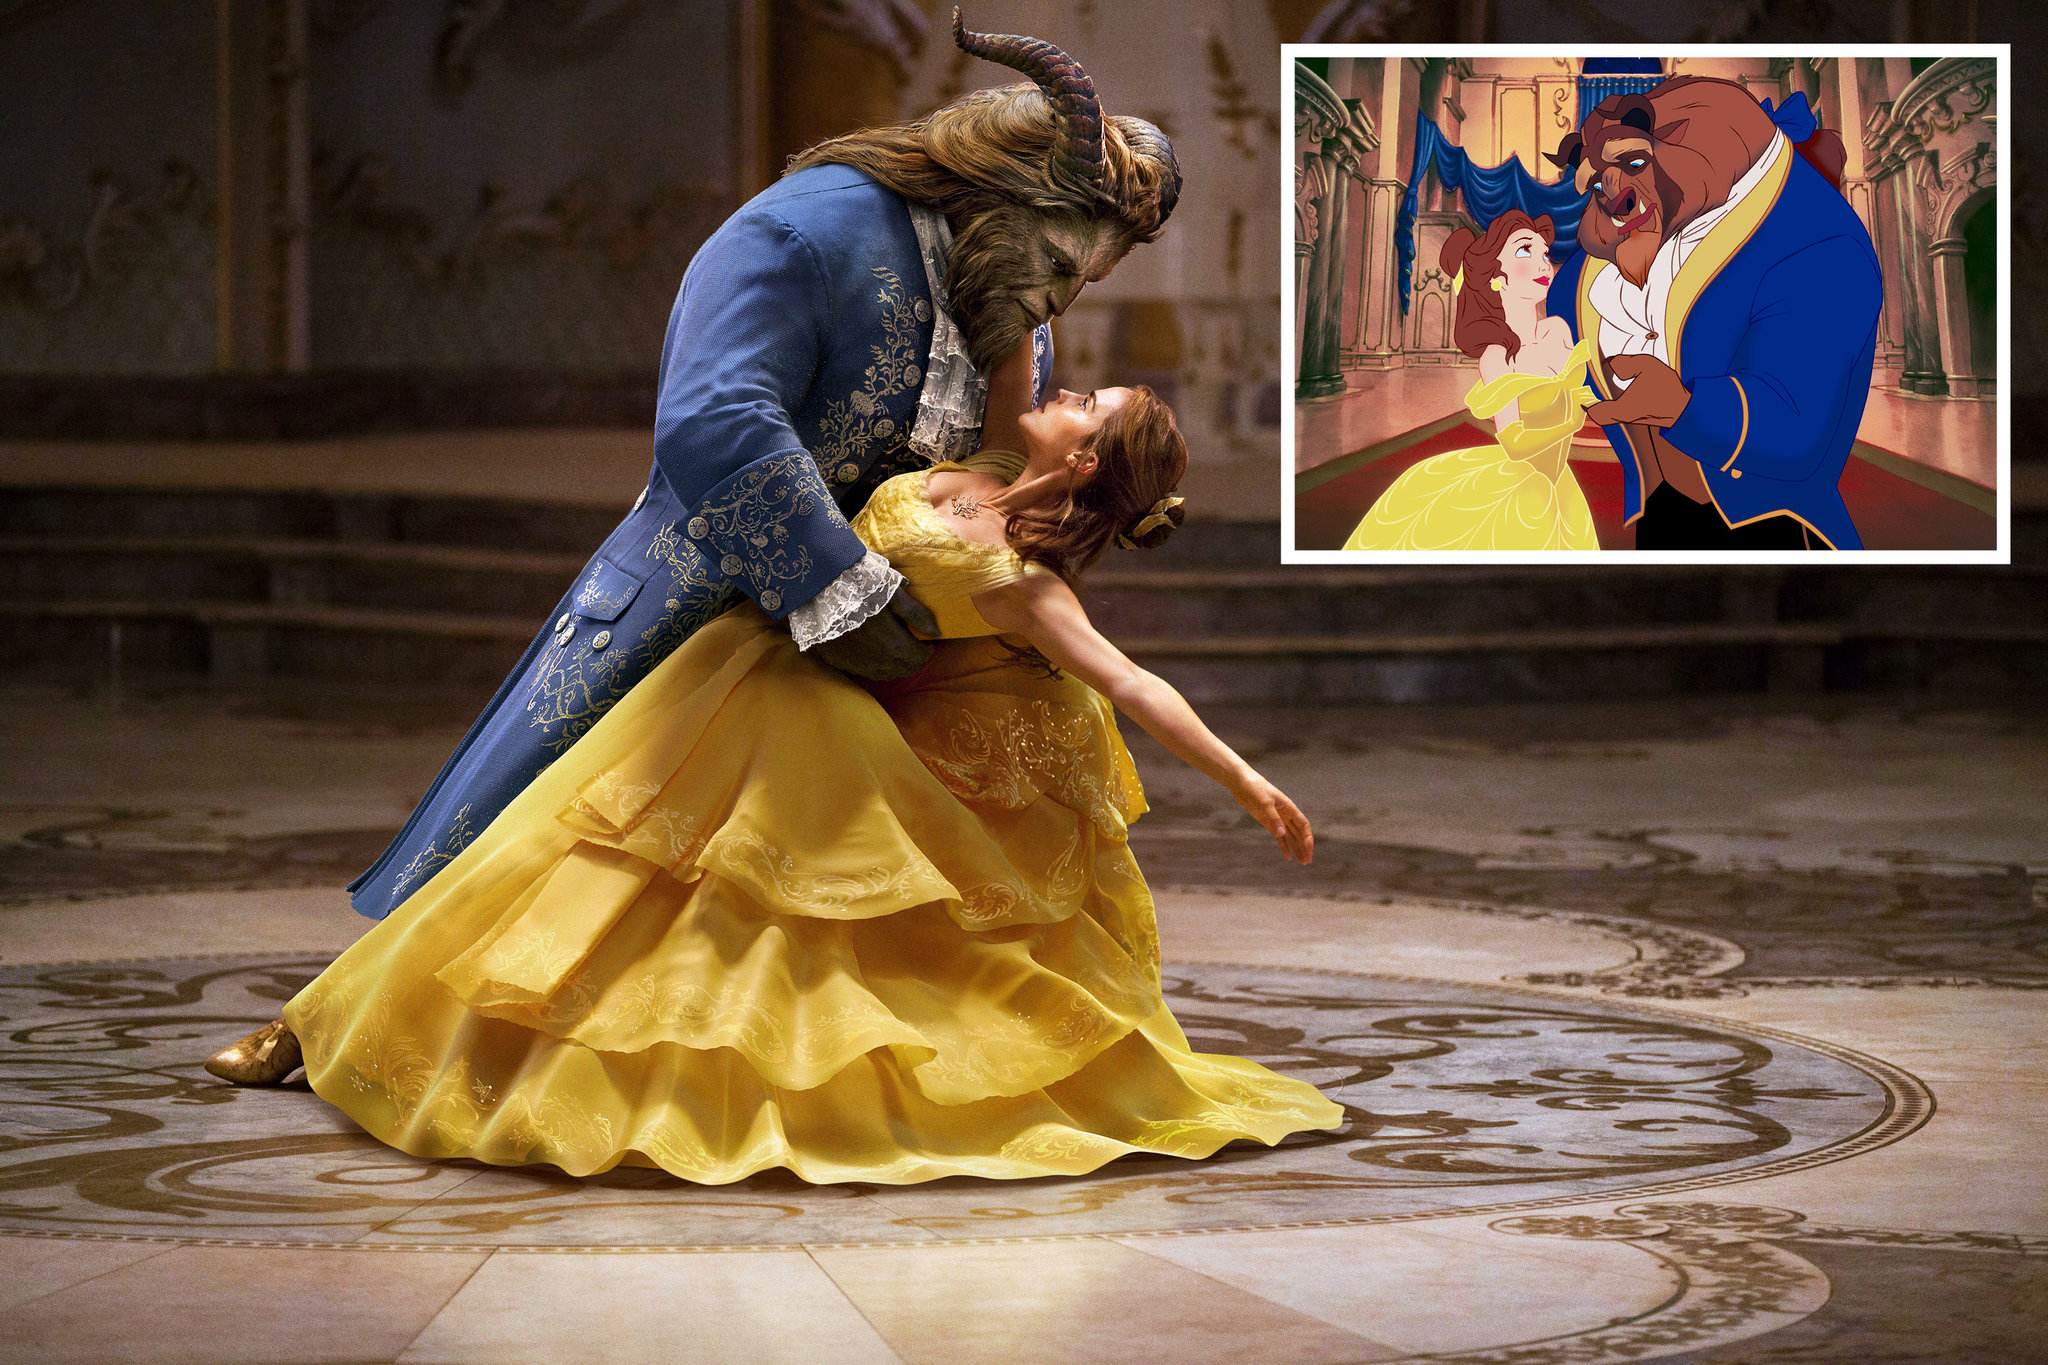 Pretty Full Wallpapers Disney Quotes Beauty And The Beast Disney S 300 Million Gamble The